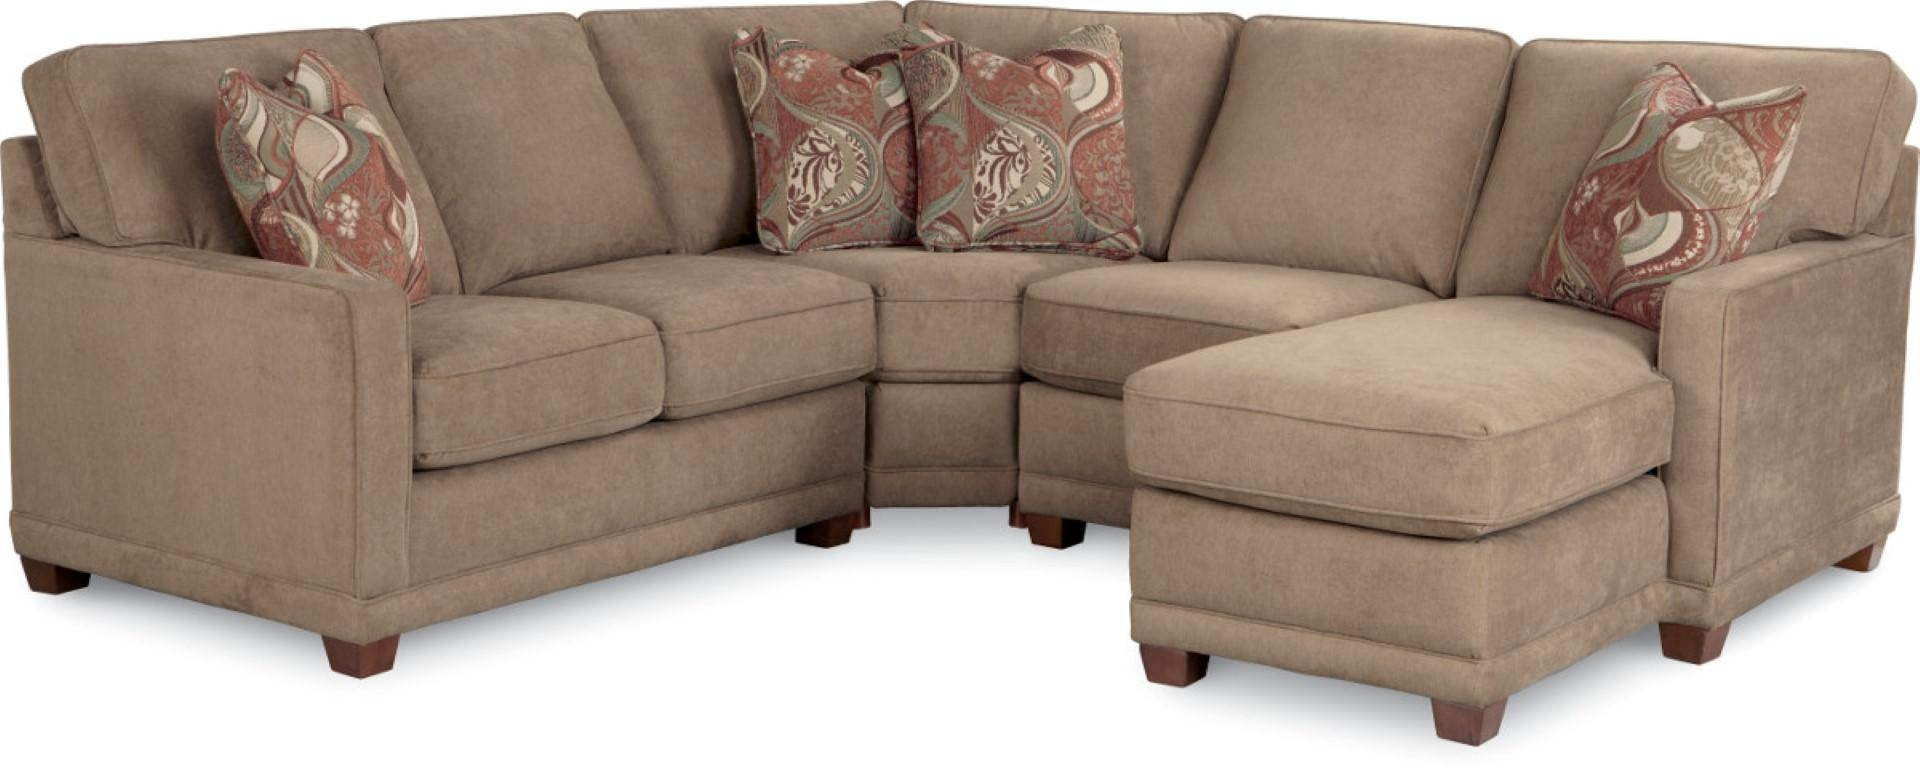 Furniture: Lazyboy Sectional With Cool Various Designs And Colors Regarding Lazyboy Sectional (View 6 of 20)